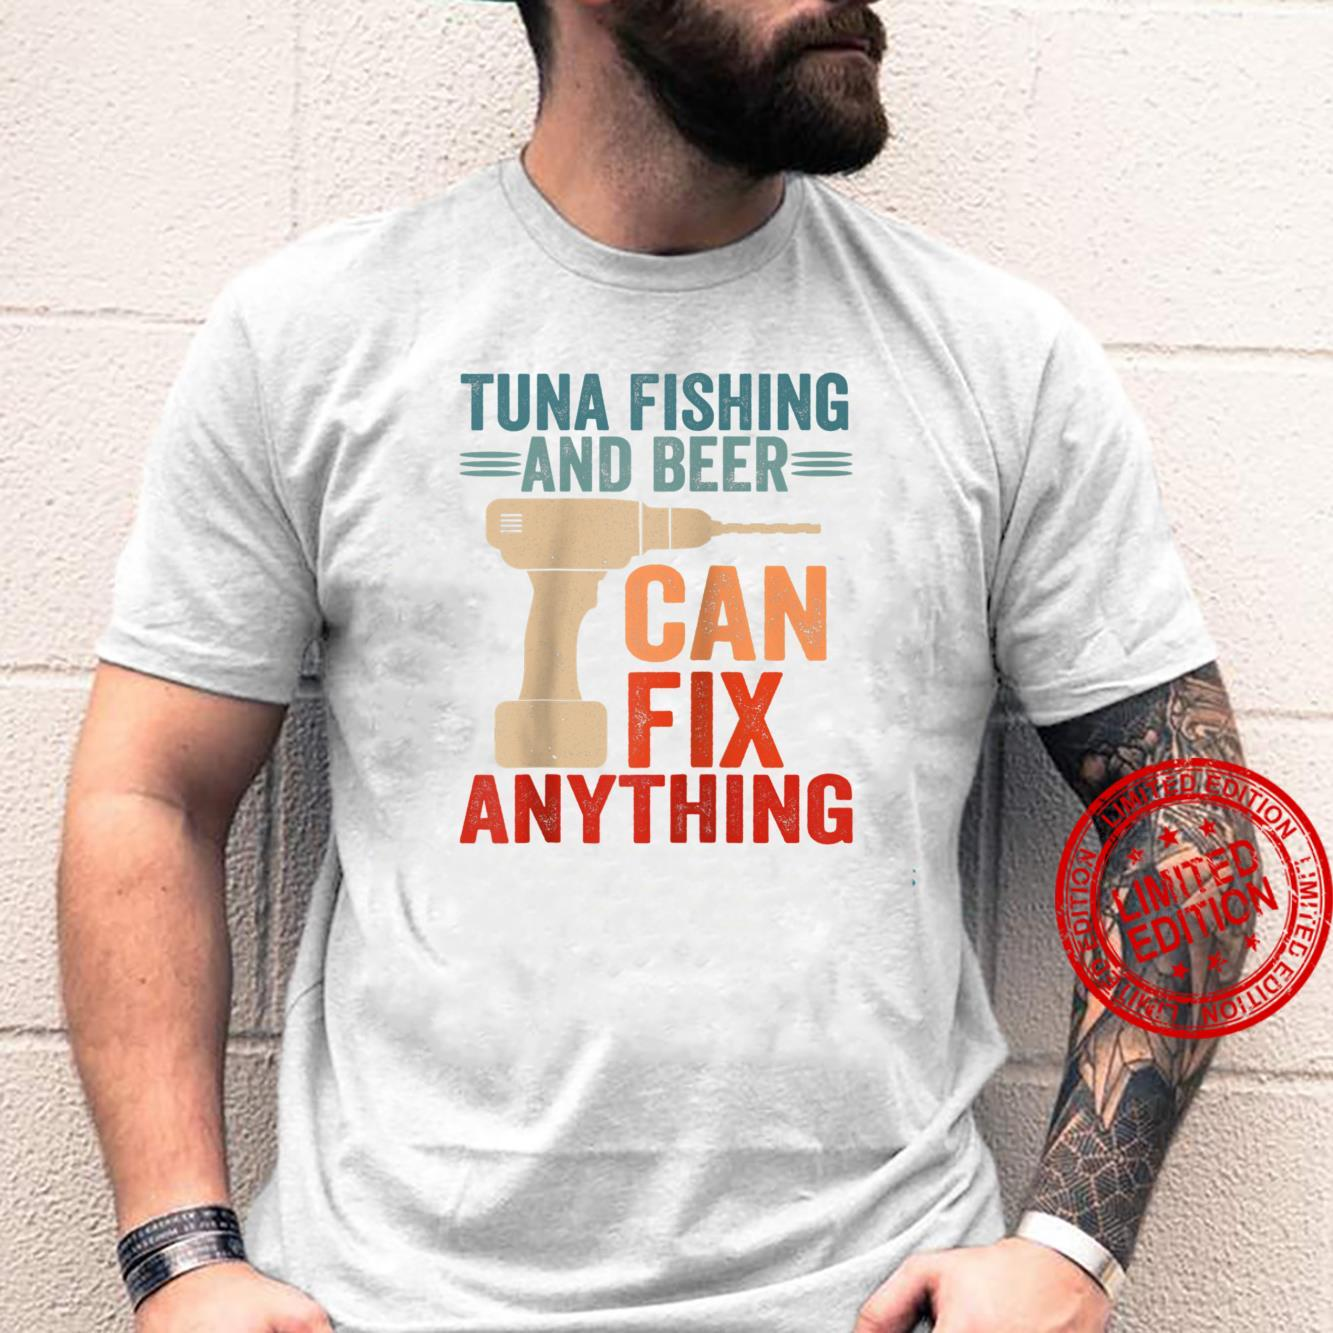 Tuna Fishing And Beer Can Fix Anything Shirt